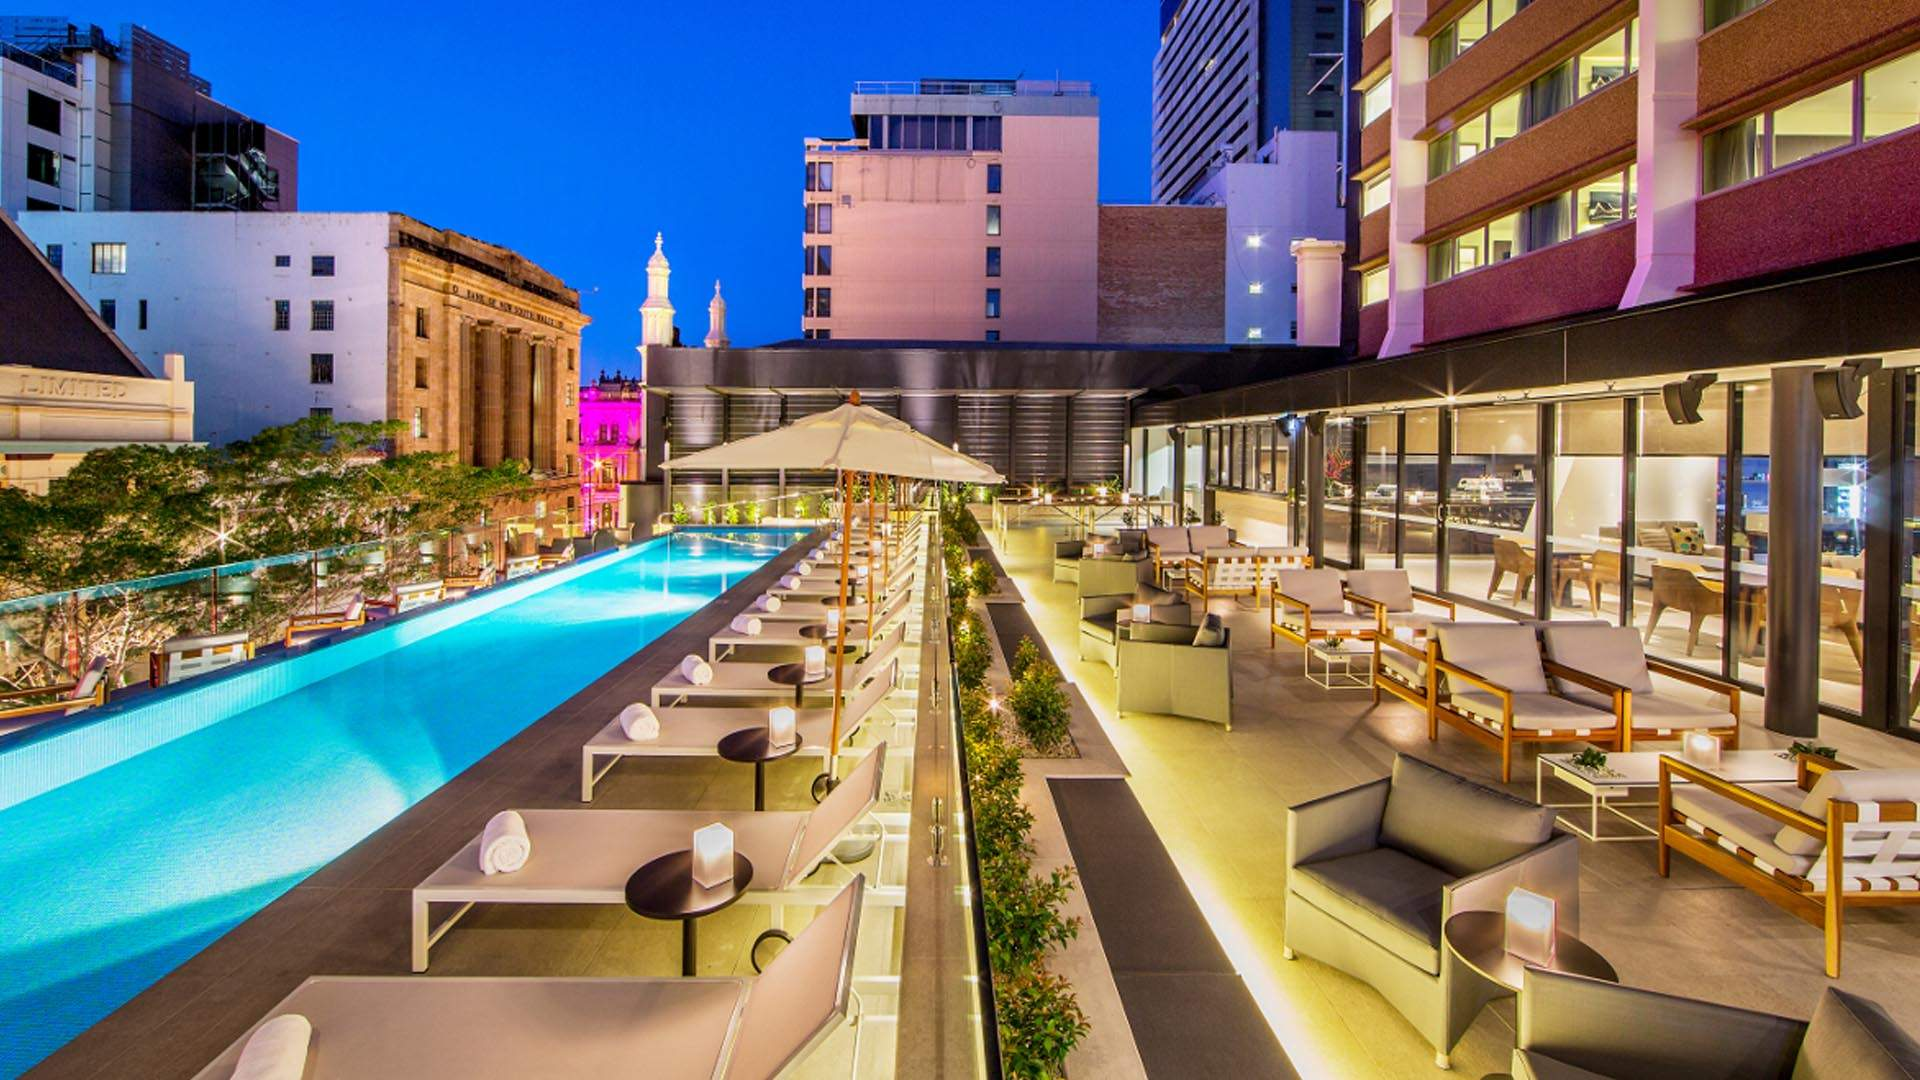 Sun Lounges Brisbane Rooftop Hotels In New Orleans Downtown New Orleans Hotel